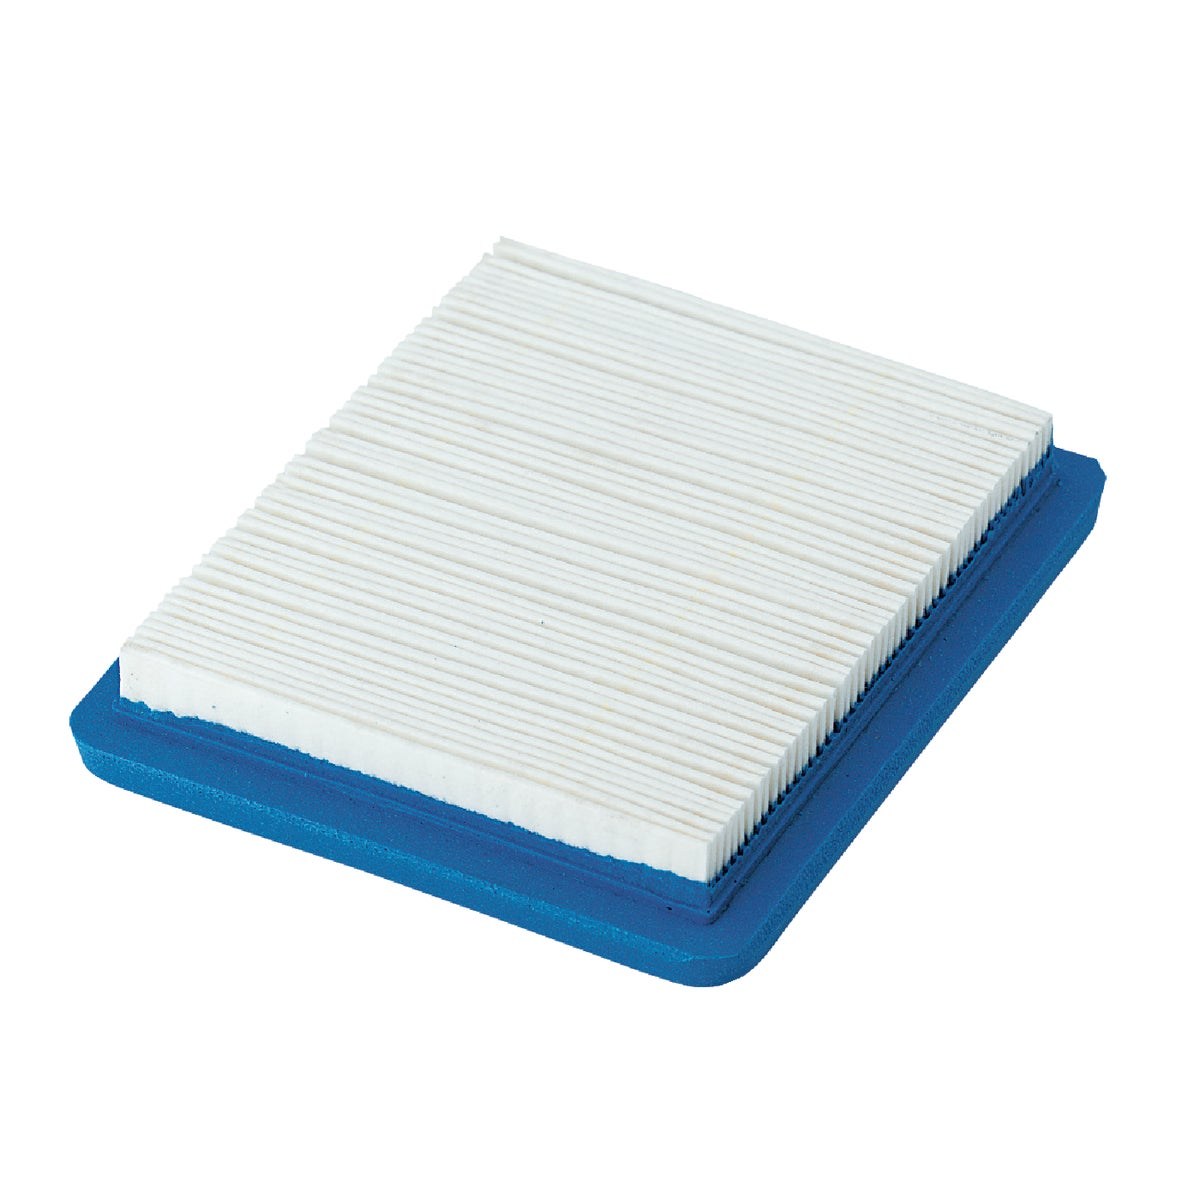 B&S AIR FILTER - BAF-119 by Arnold Corp